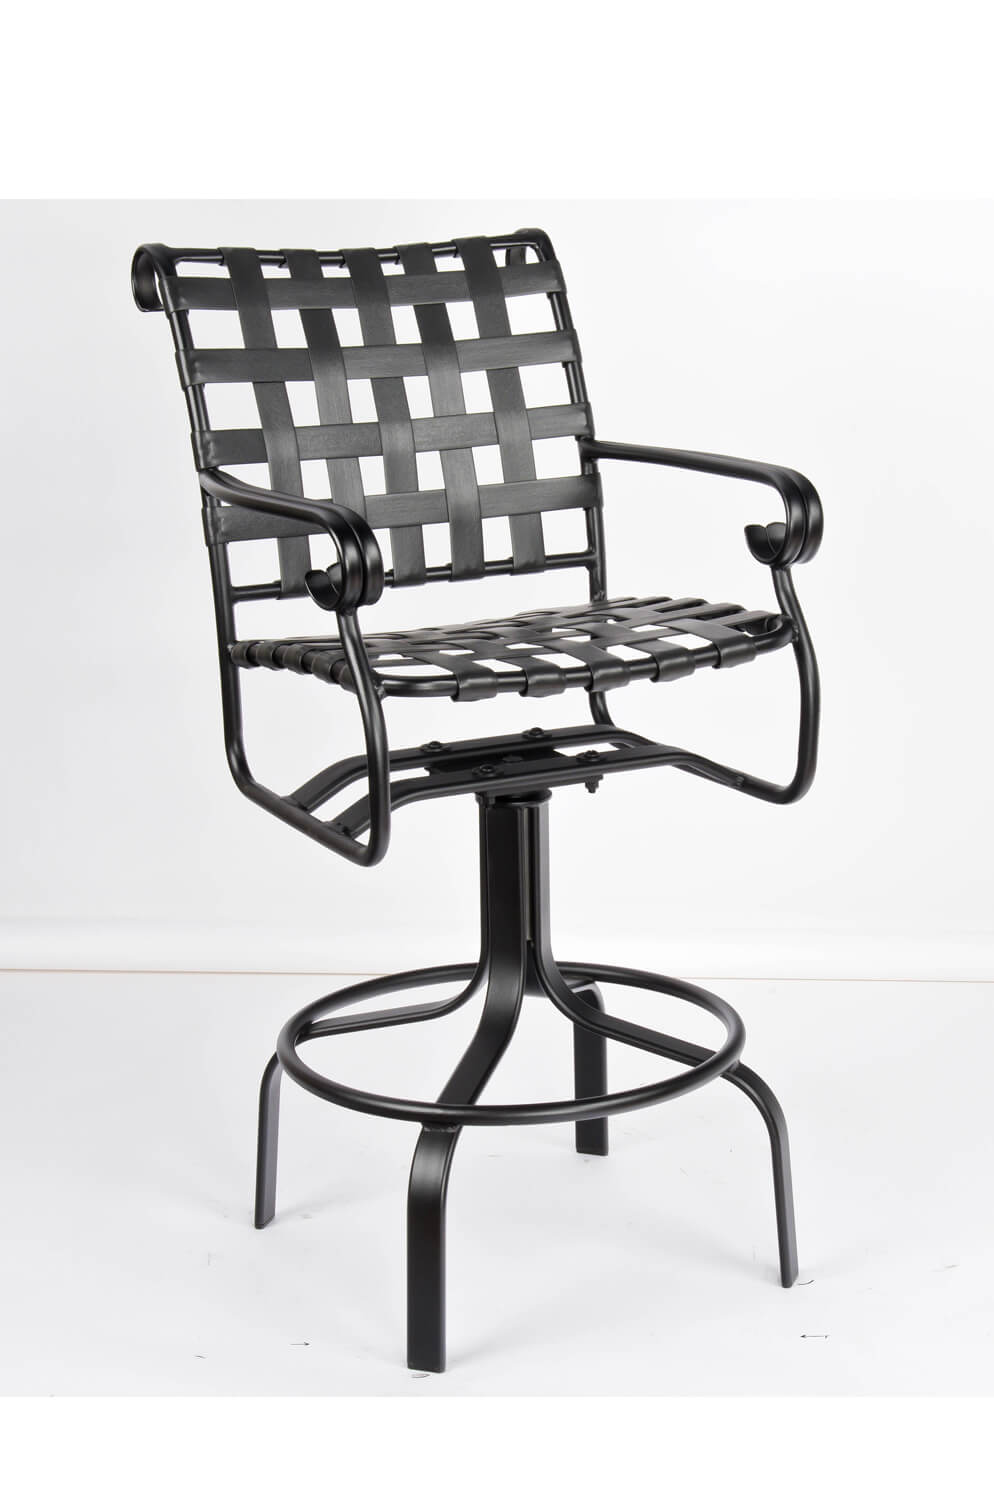 Ramsgate Outdoor Aluminum Swivel Stool with Arms